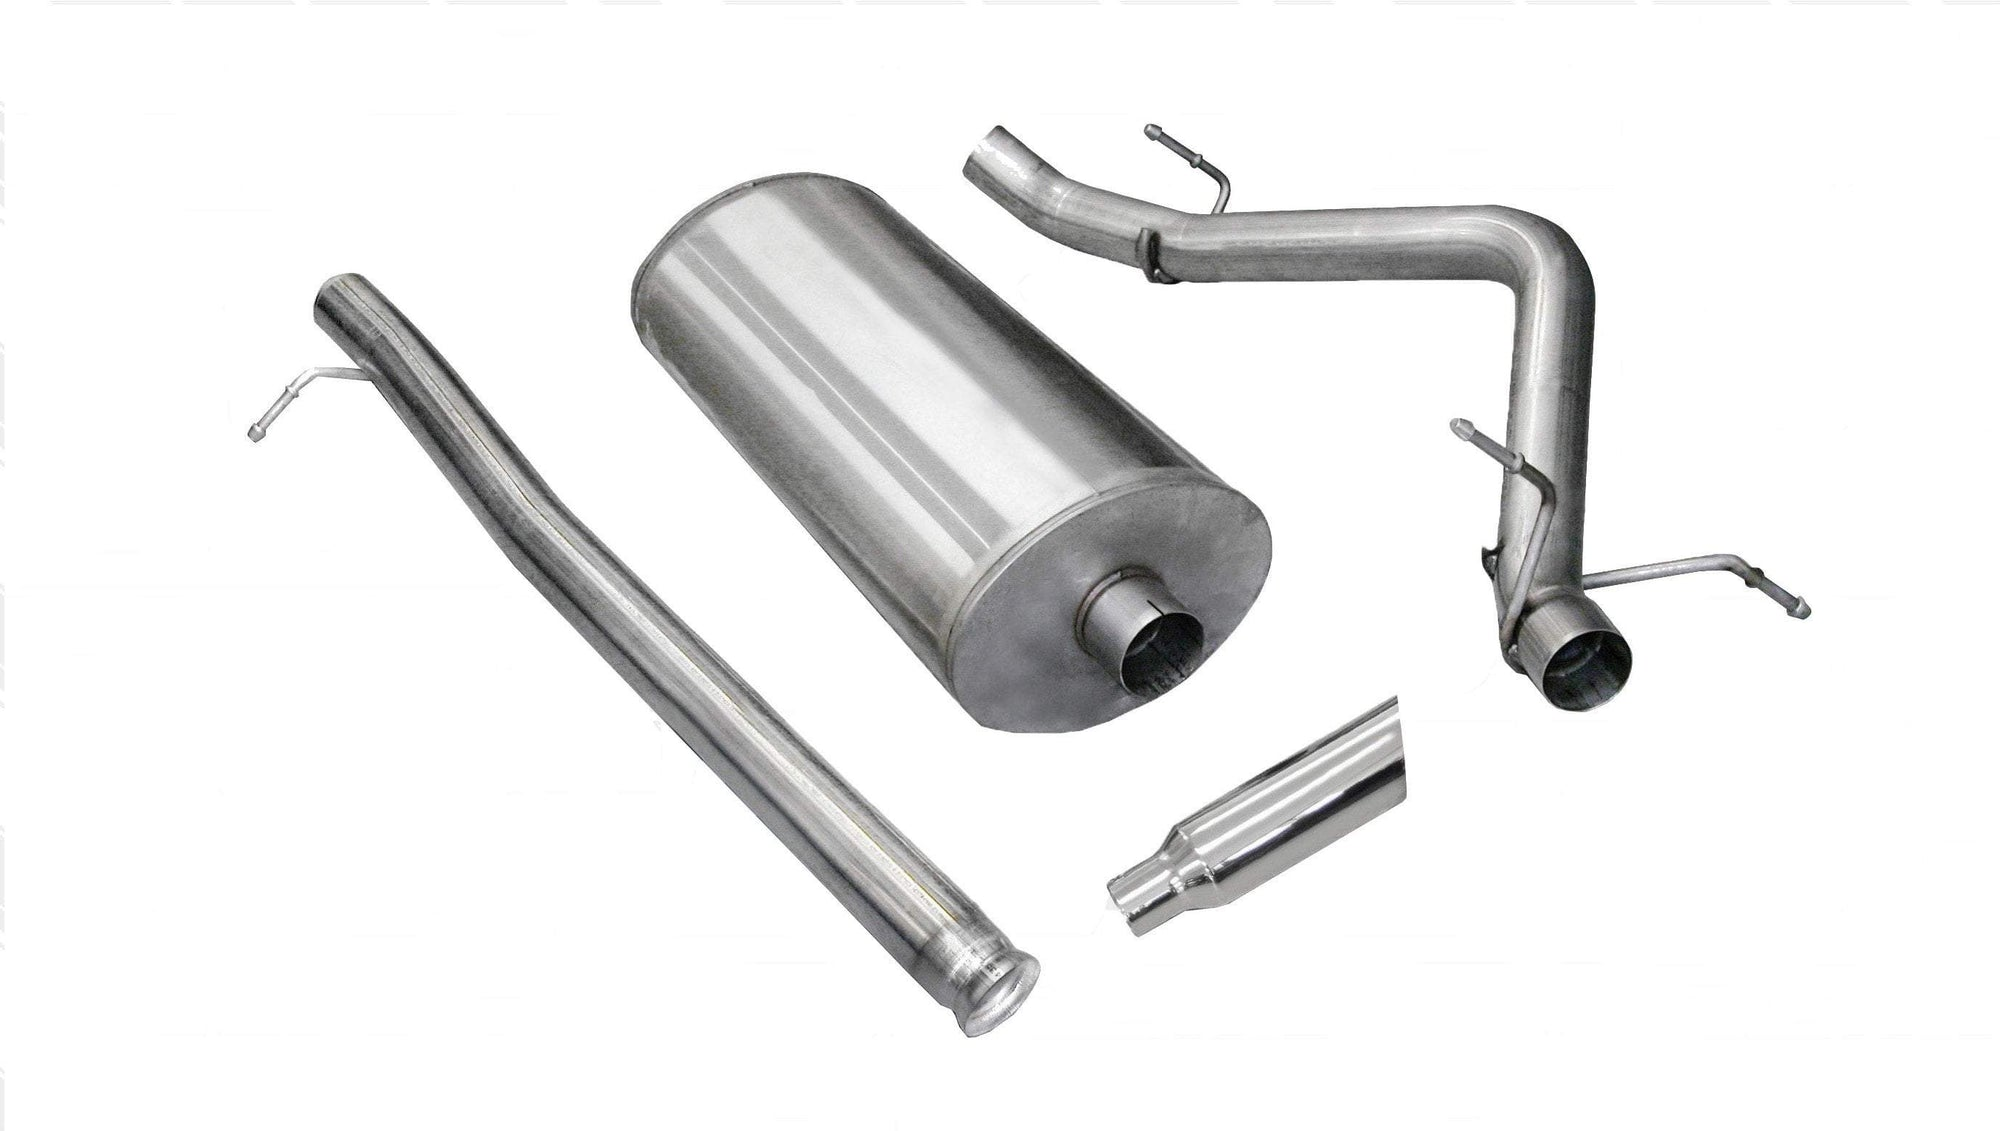 "dB Cat-Back Exhaust Polished / Sport / Single Side - Single 4in 2010-2013 Chevrolet Silverado, GMC Sierra 4.8L, 5.0L, 6.0L V8, 3.0"" Catback Exhaust System With 4.0"" Tip (24905) Sport Sound Level"